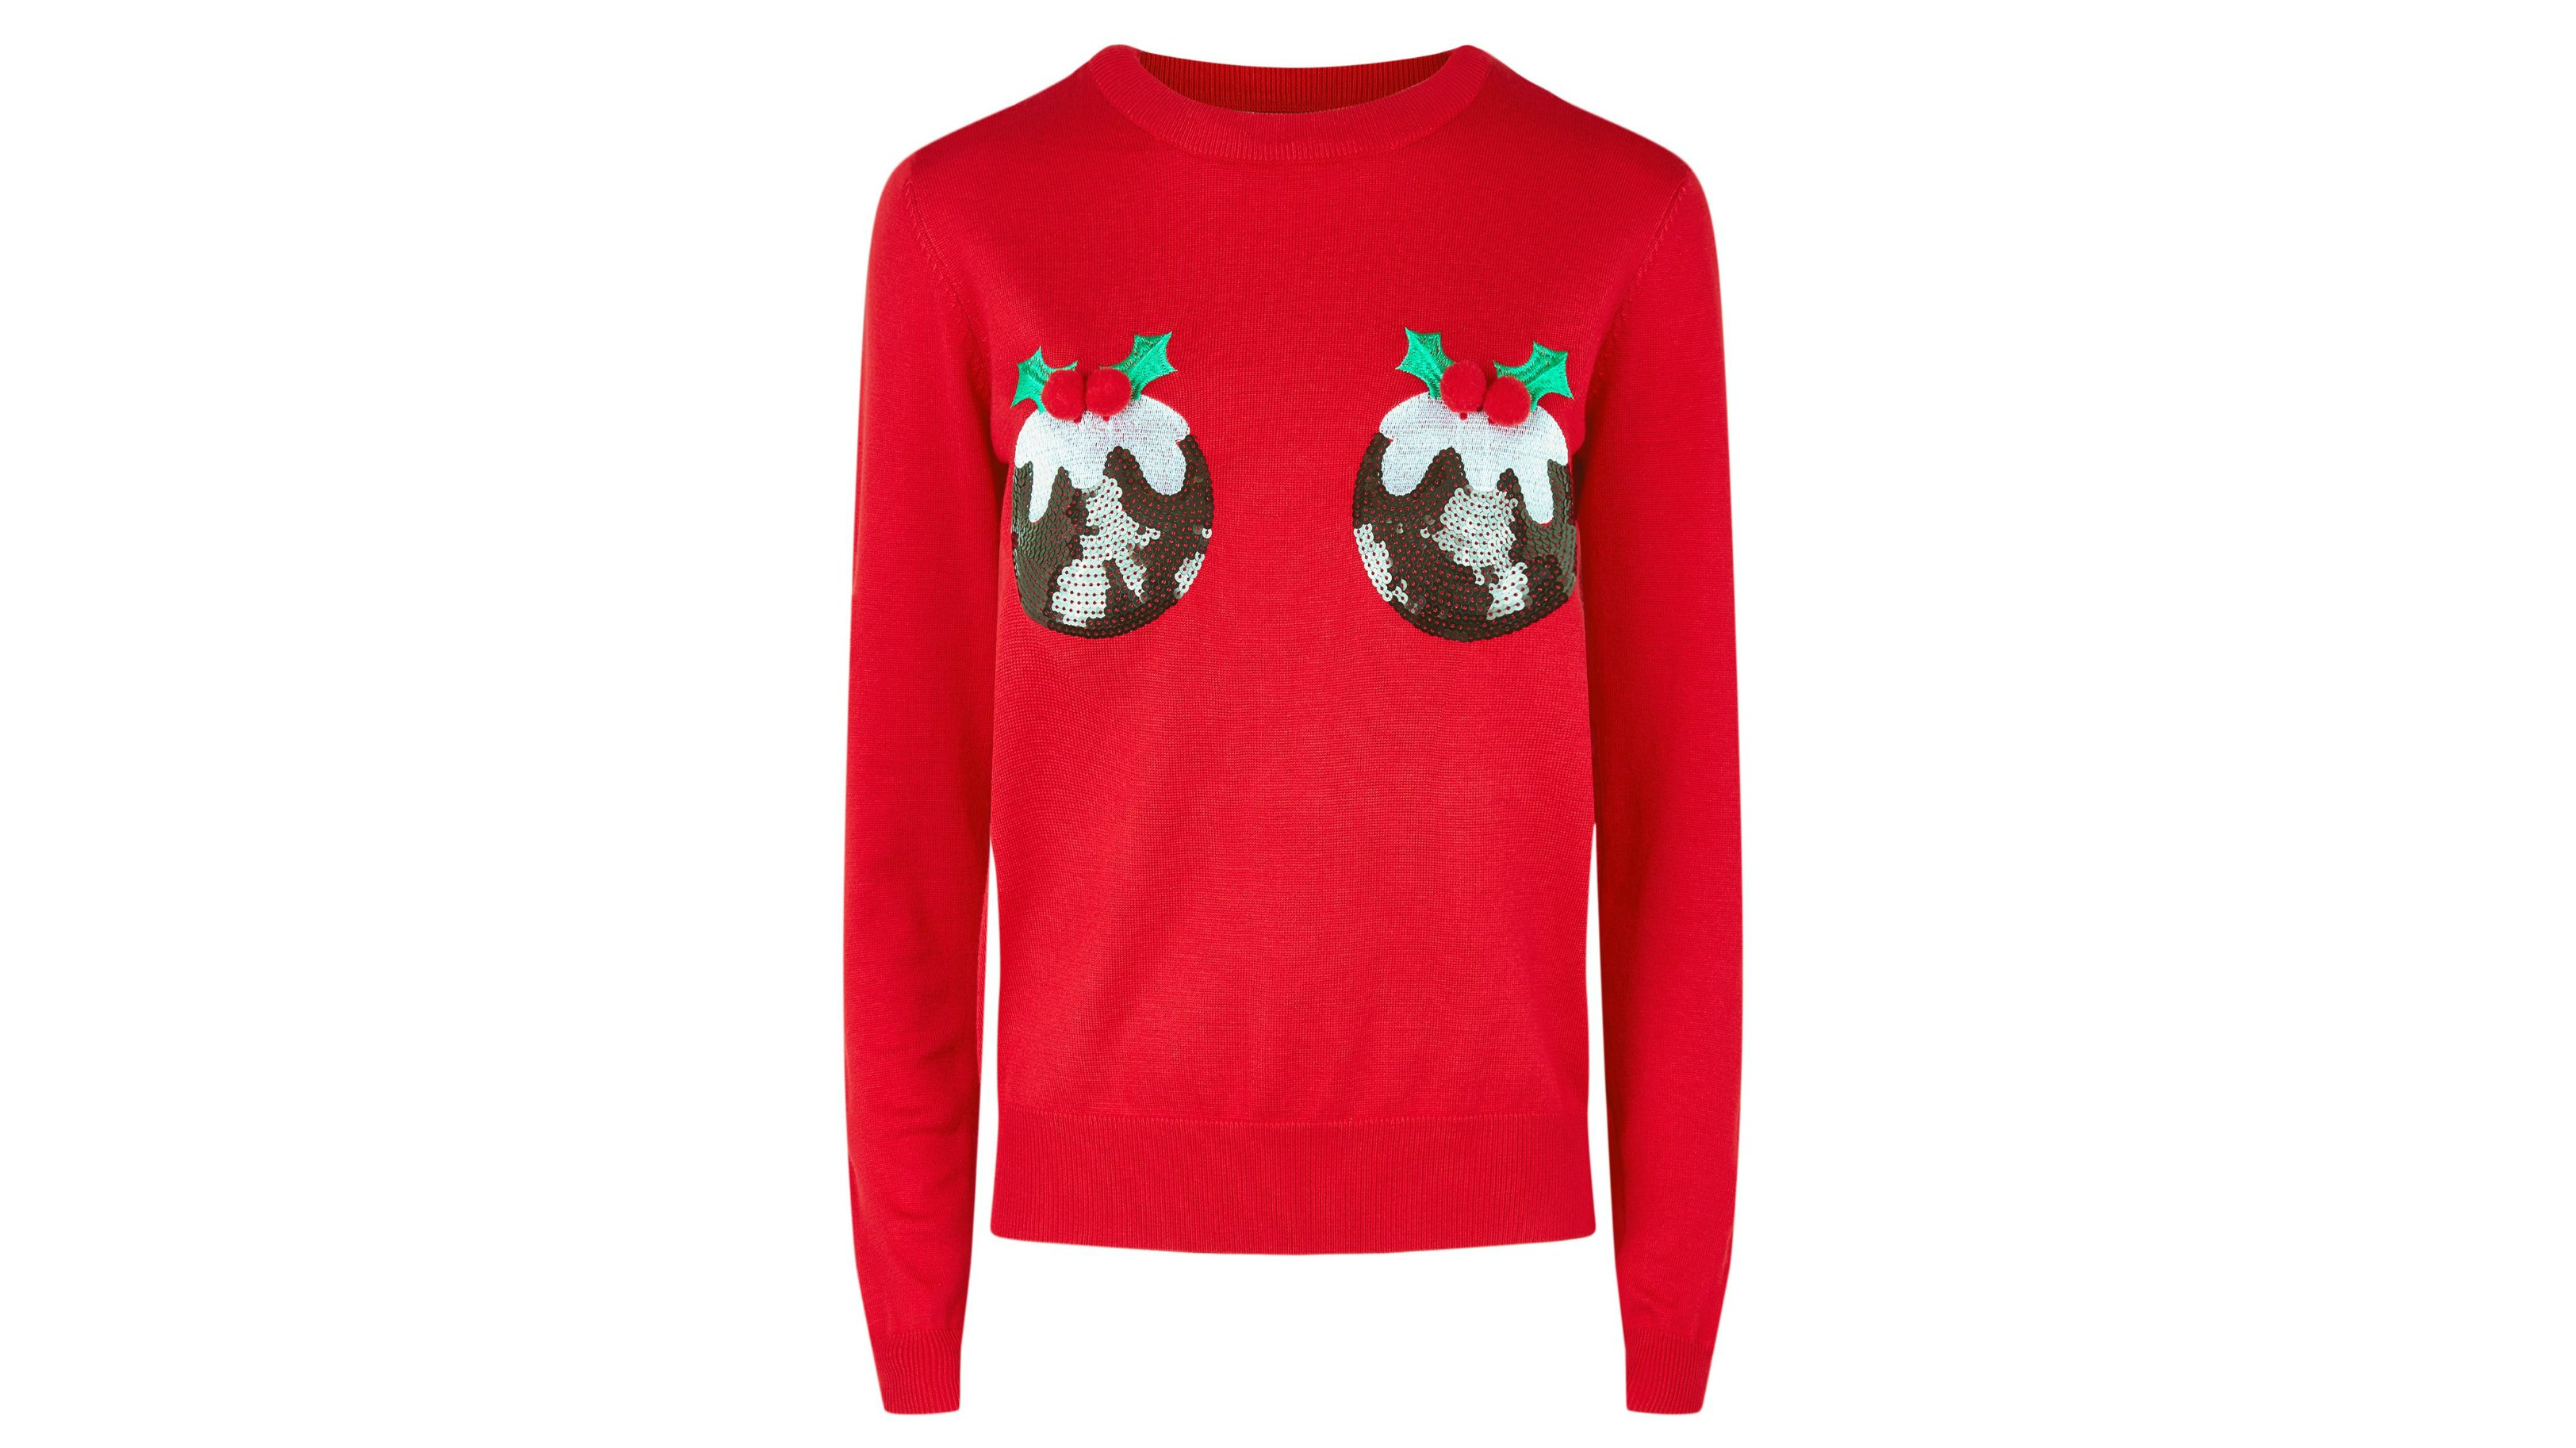 Best Christmas jumpers 2020: Get in the festive spirit with